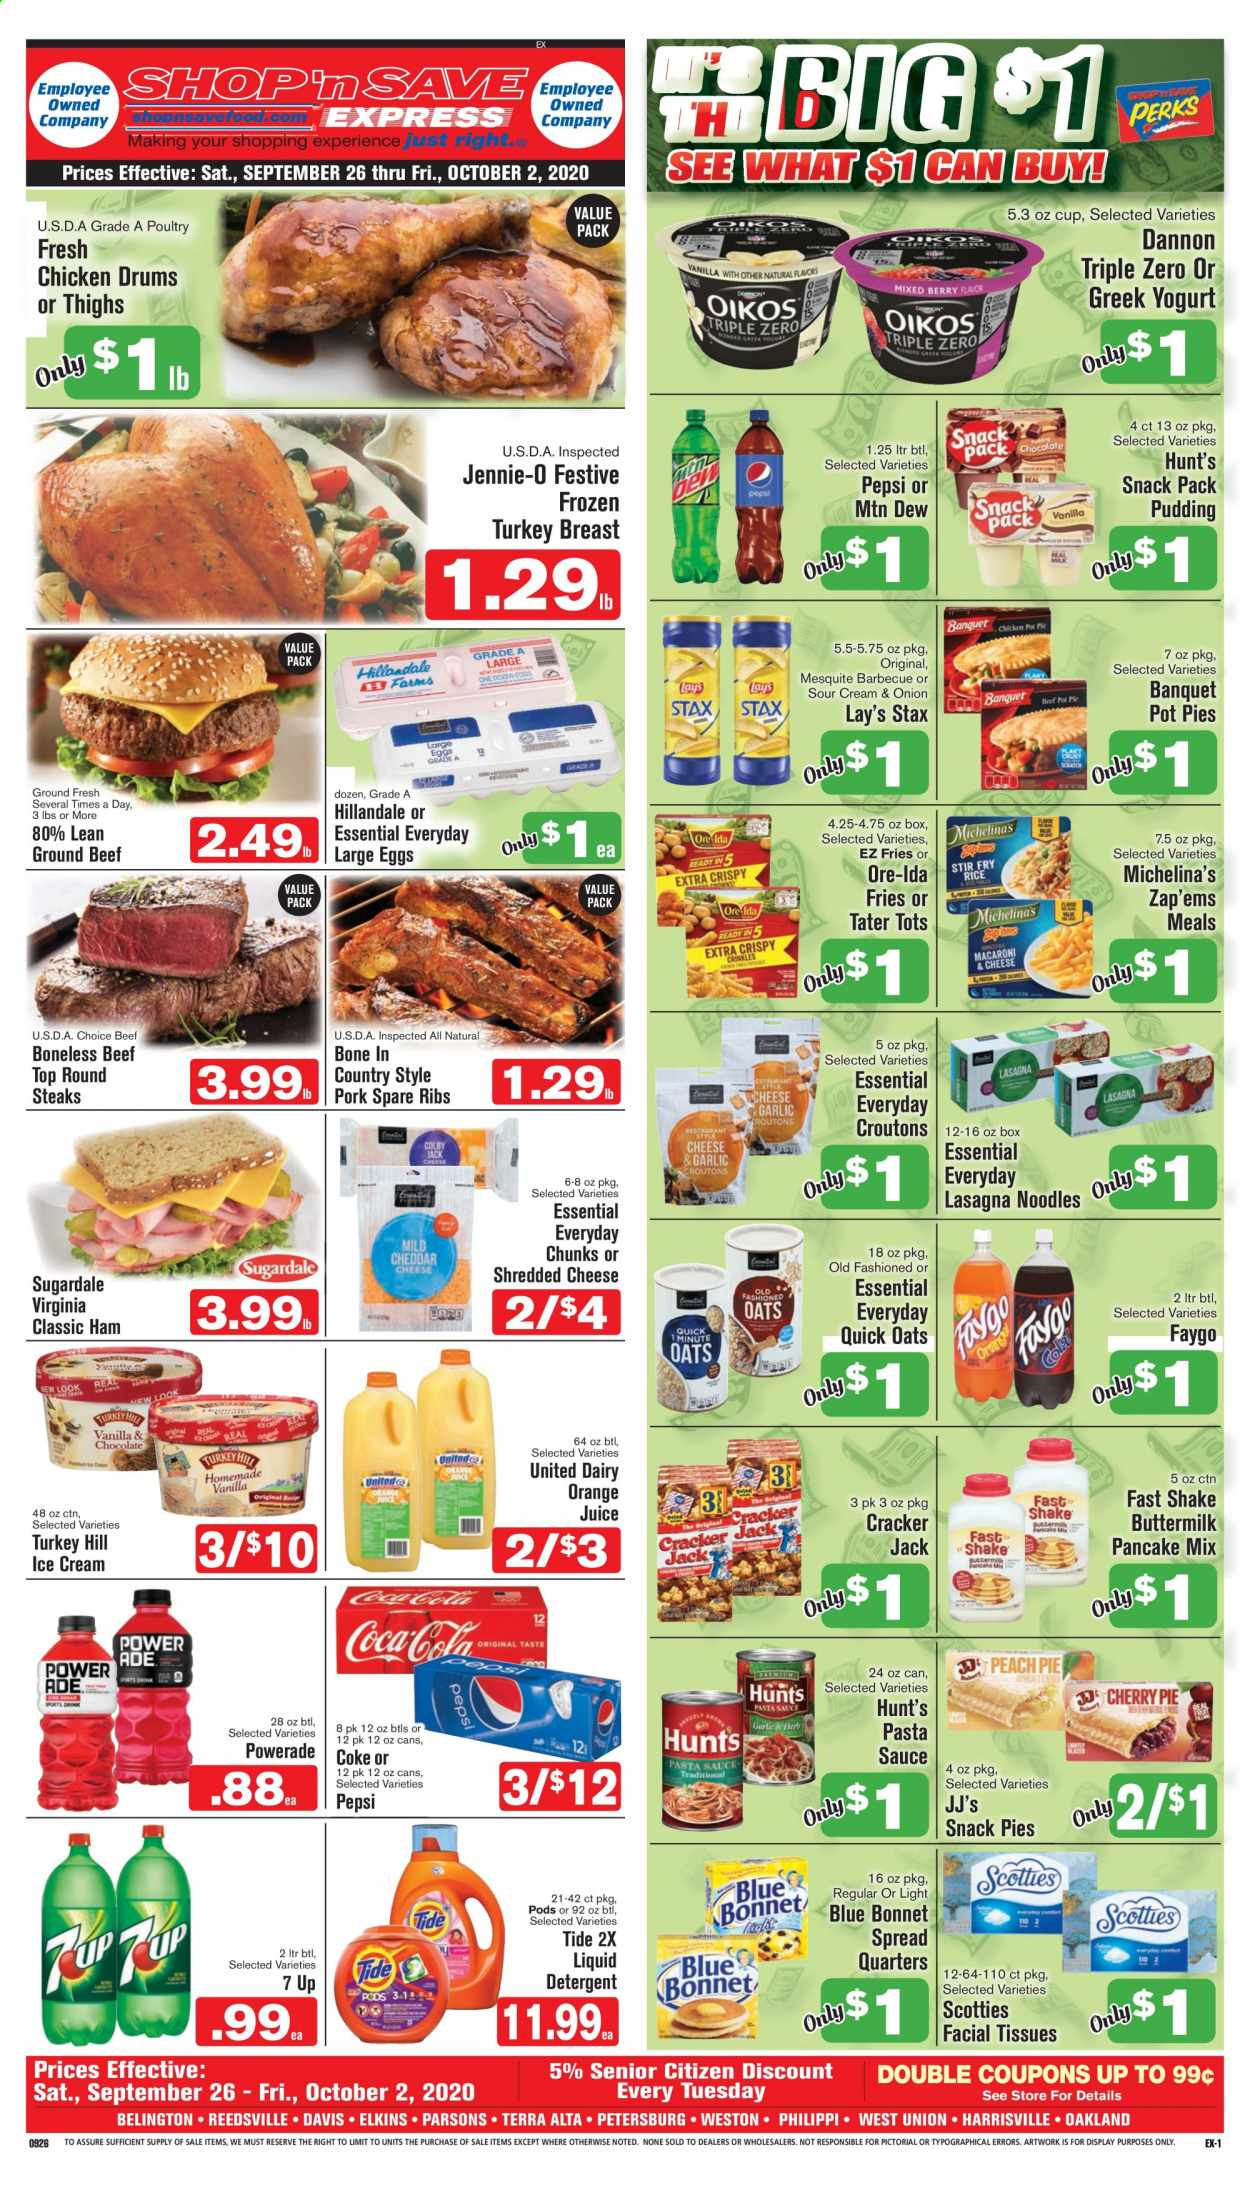 Shop 'n Save Express Flyer - 09.26.2020 - 10.02.2020 - Sales products - beef meat, box, buttermilk, coca-cola, croutons, cup, detergent, eggs, facial tissues, frozen turkey, greek yogurt, ground beef, shredded cheese, sour cream, tide, turkey, turkey breast, yogurt, ham, ice cream, pork meat, pot, pot pies, powerade, pudding, chicken, pancake mix, pasta sauce, pepsi, oats, onion, orange juice, orange, pork spare ribs, cheese, juice, noodles, snack, pasta, lay's, cracker, sauce, ribs, tissues, liquid detergent, liquid, frozen turkey breast, barbecue, pancake. Page 1.